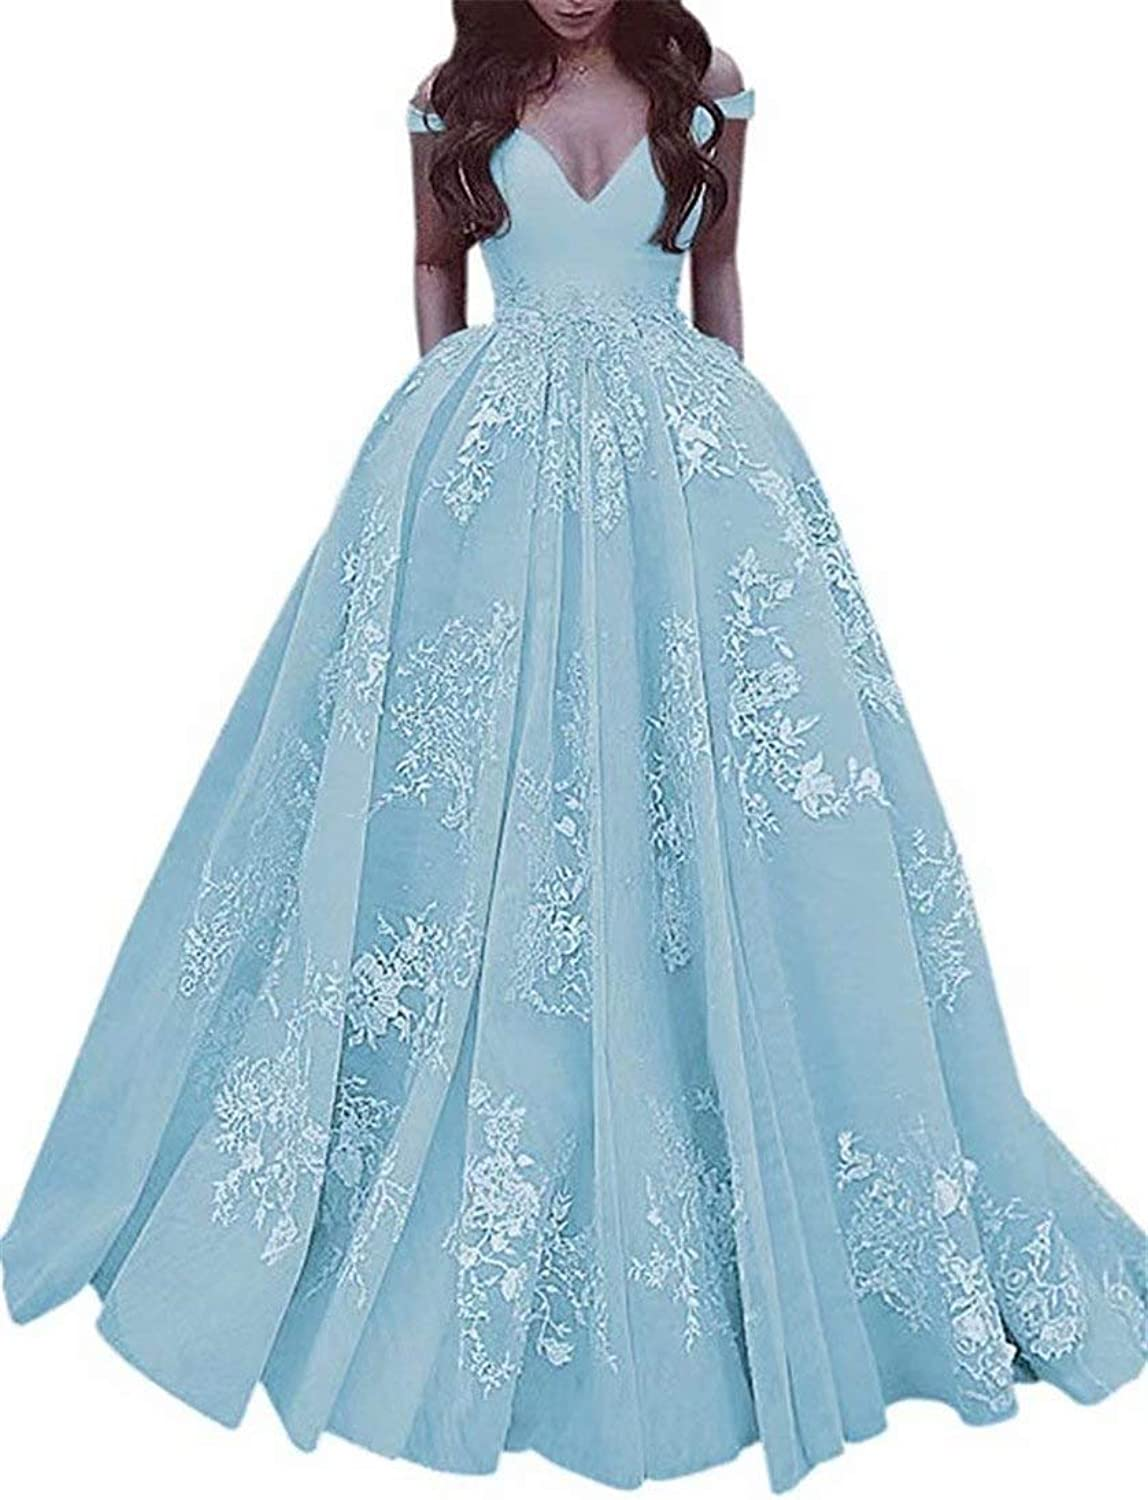 EEFZL Women's Beaded Lace Appliques Prom Dresses Tulle Evening Ball Gowns Quinceanera Dresses